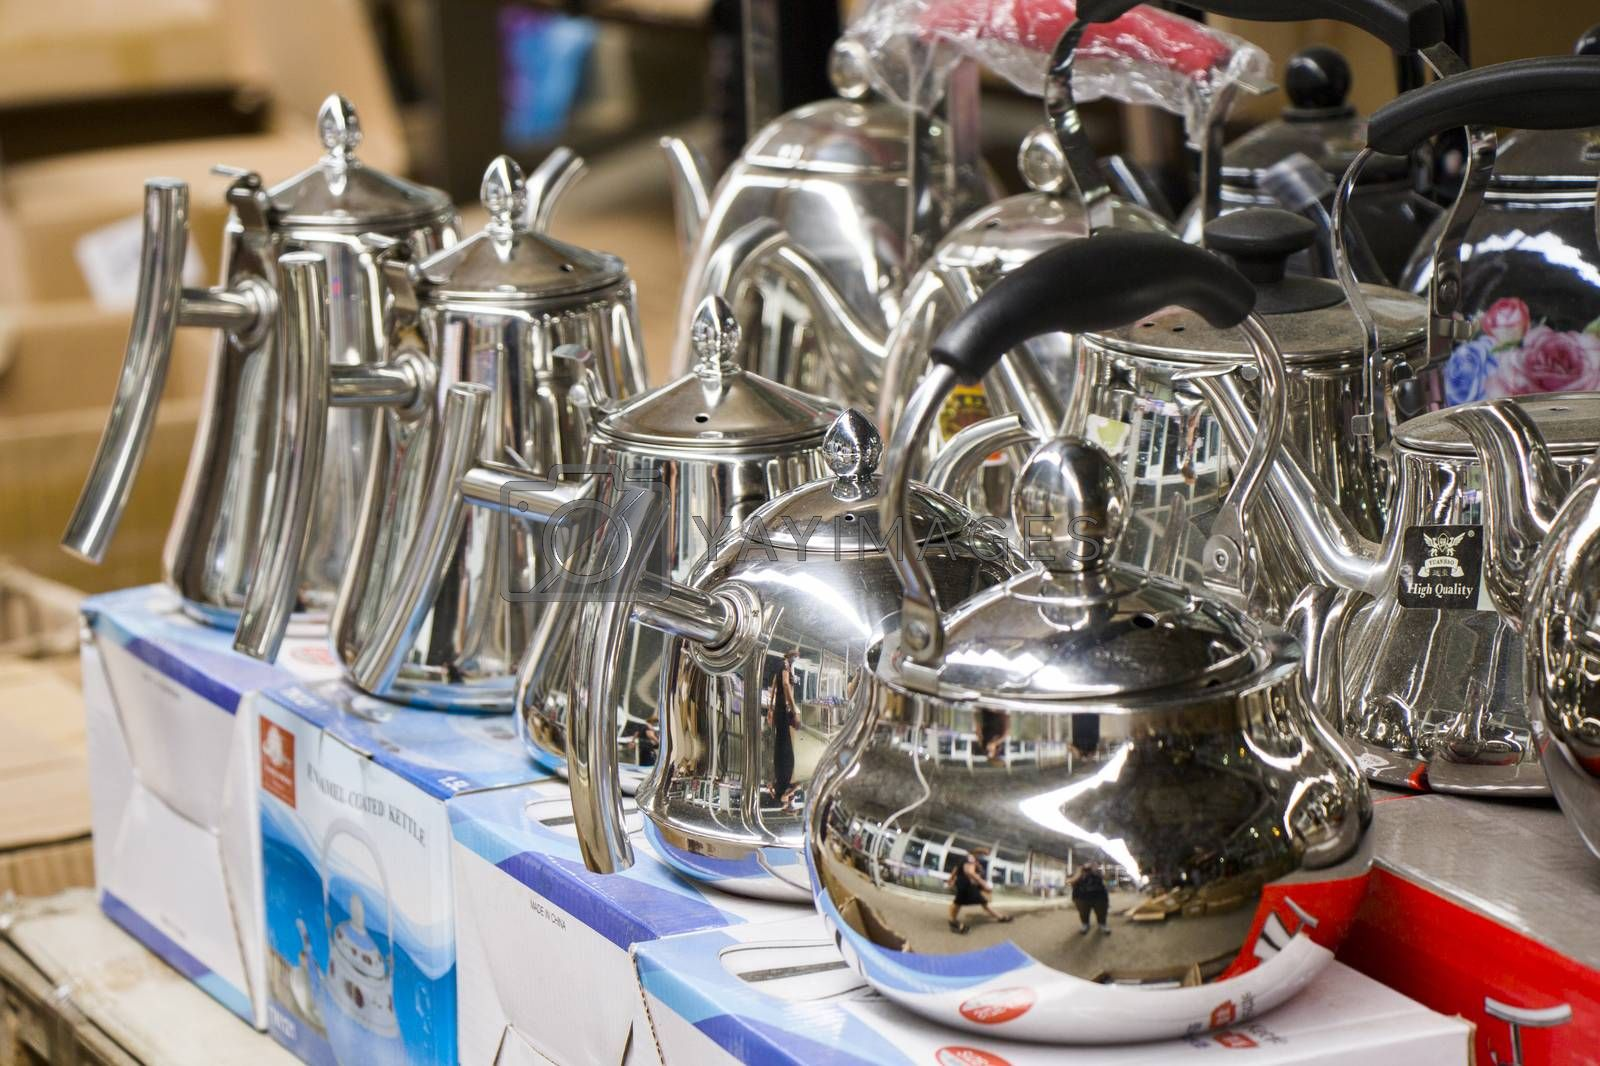 Teapot and kettle in the shop table, large group of kettles